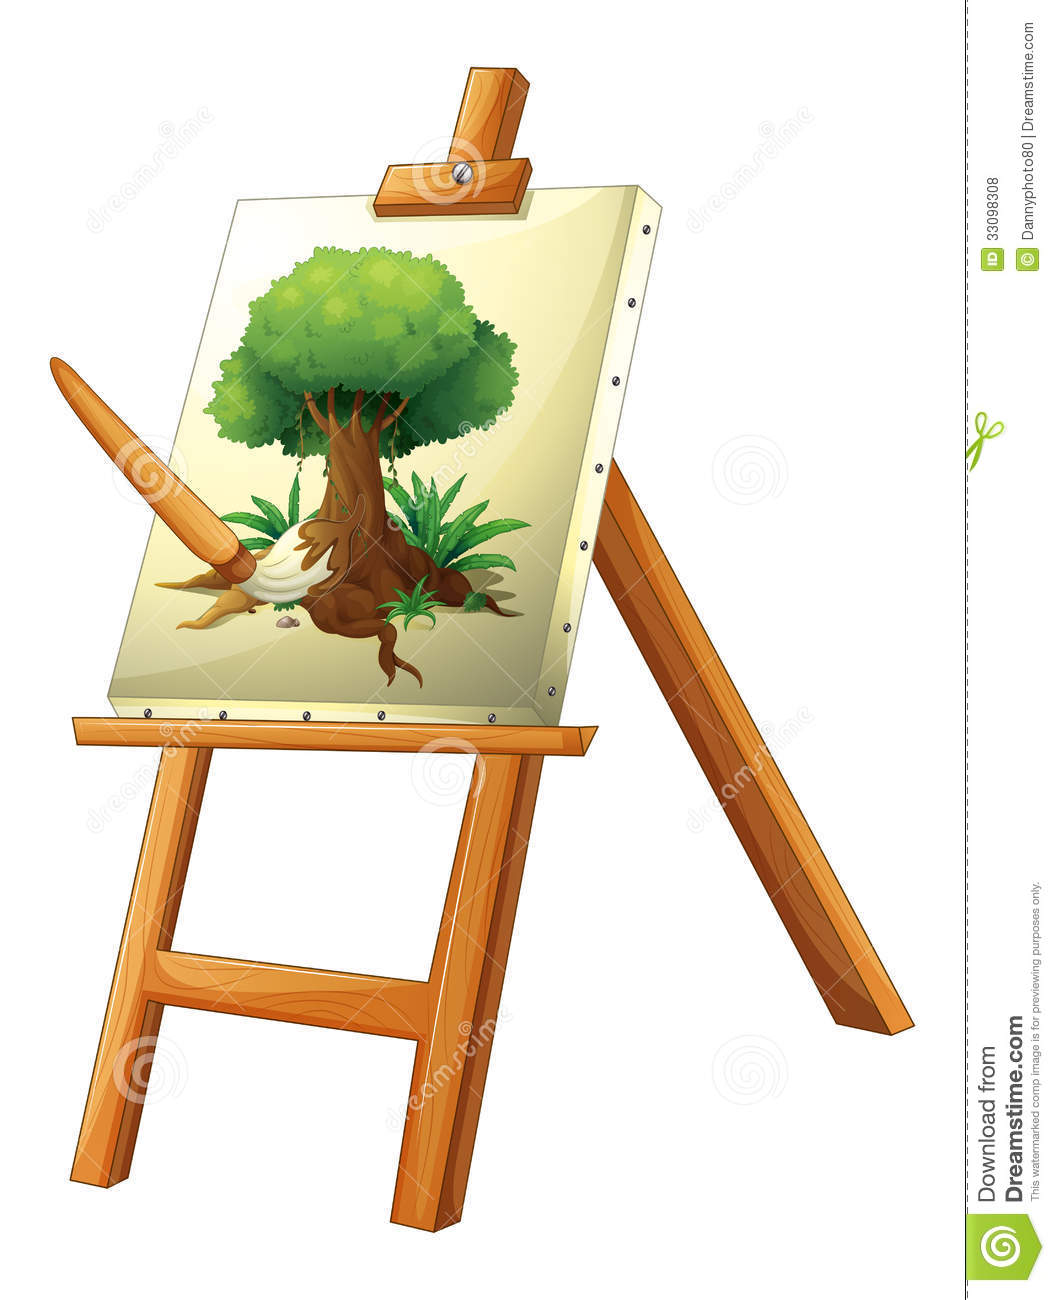 Painting a